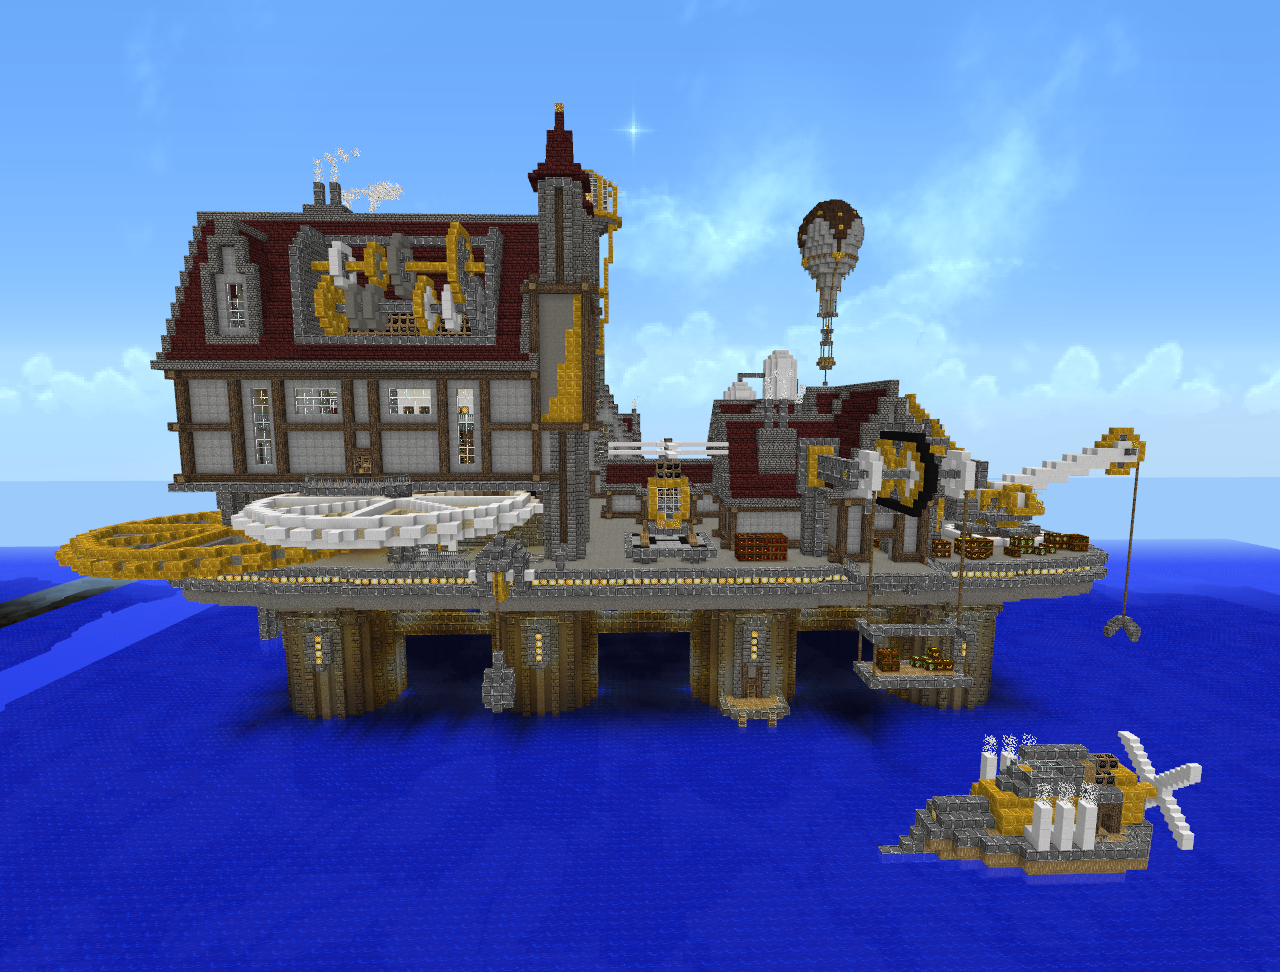 Minecraft - Steampunk City 2 by Virenth on DeviantArt